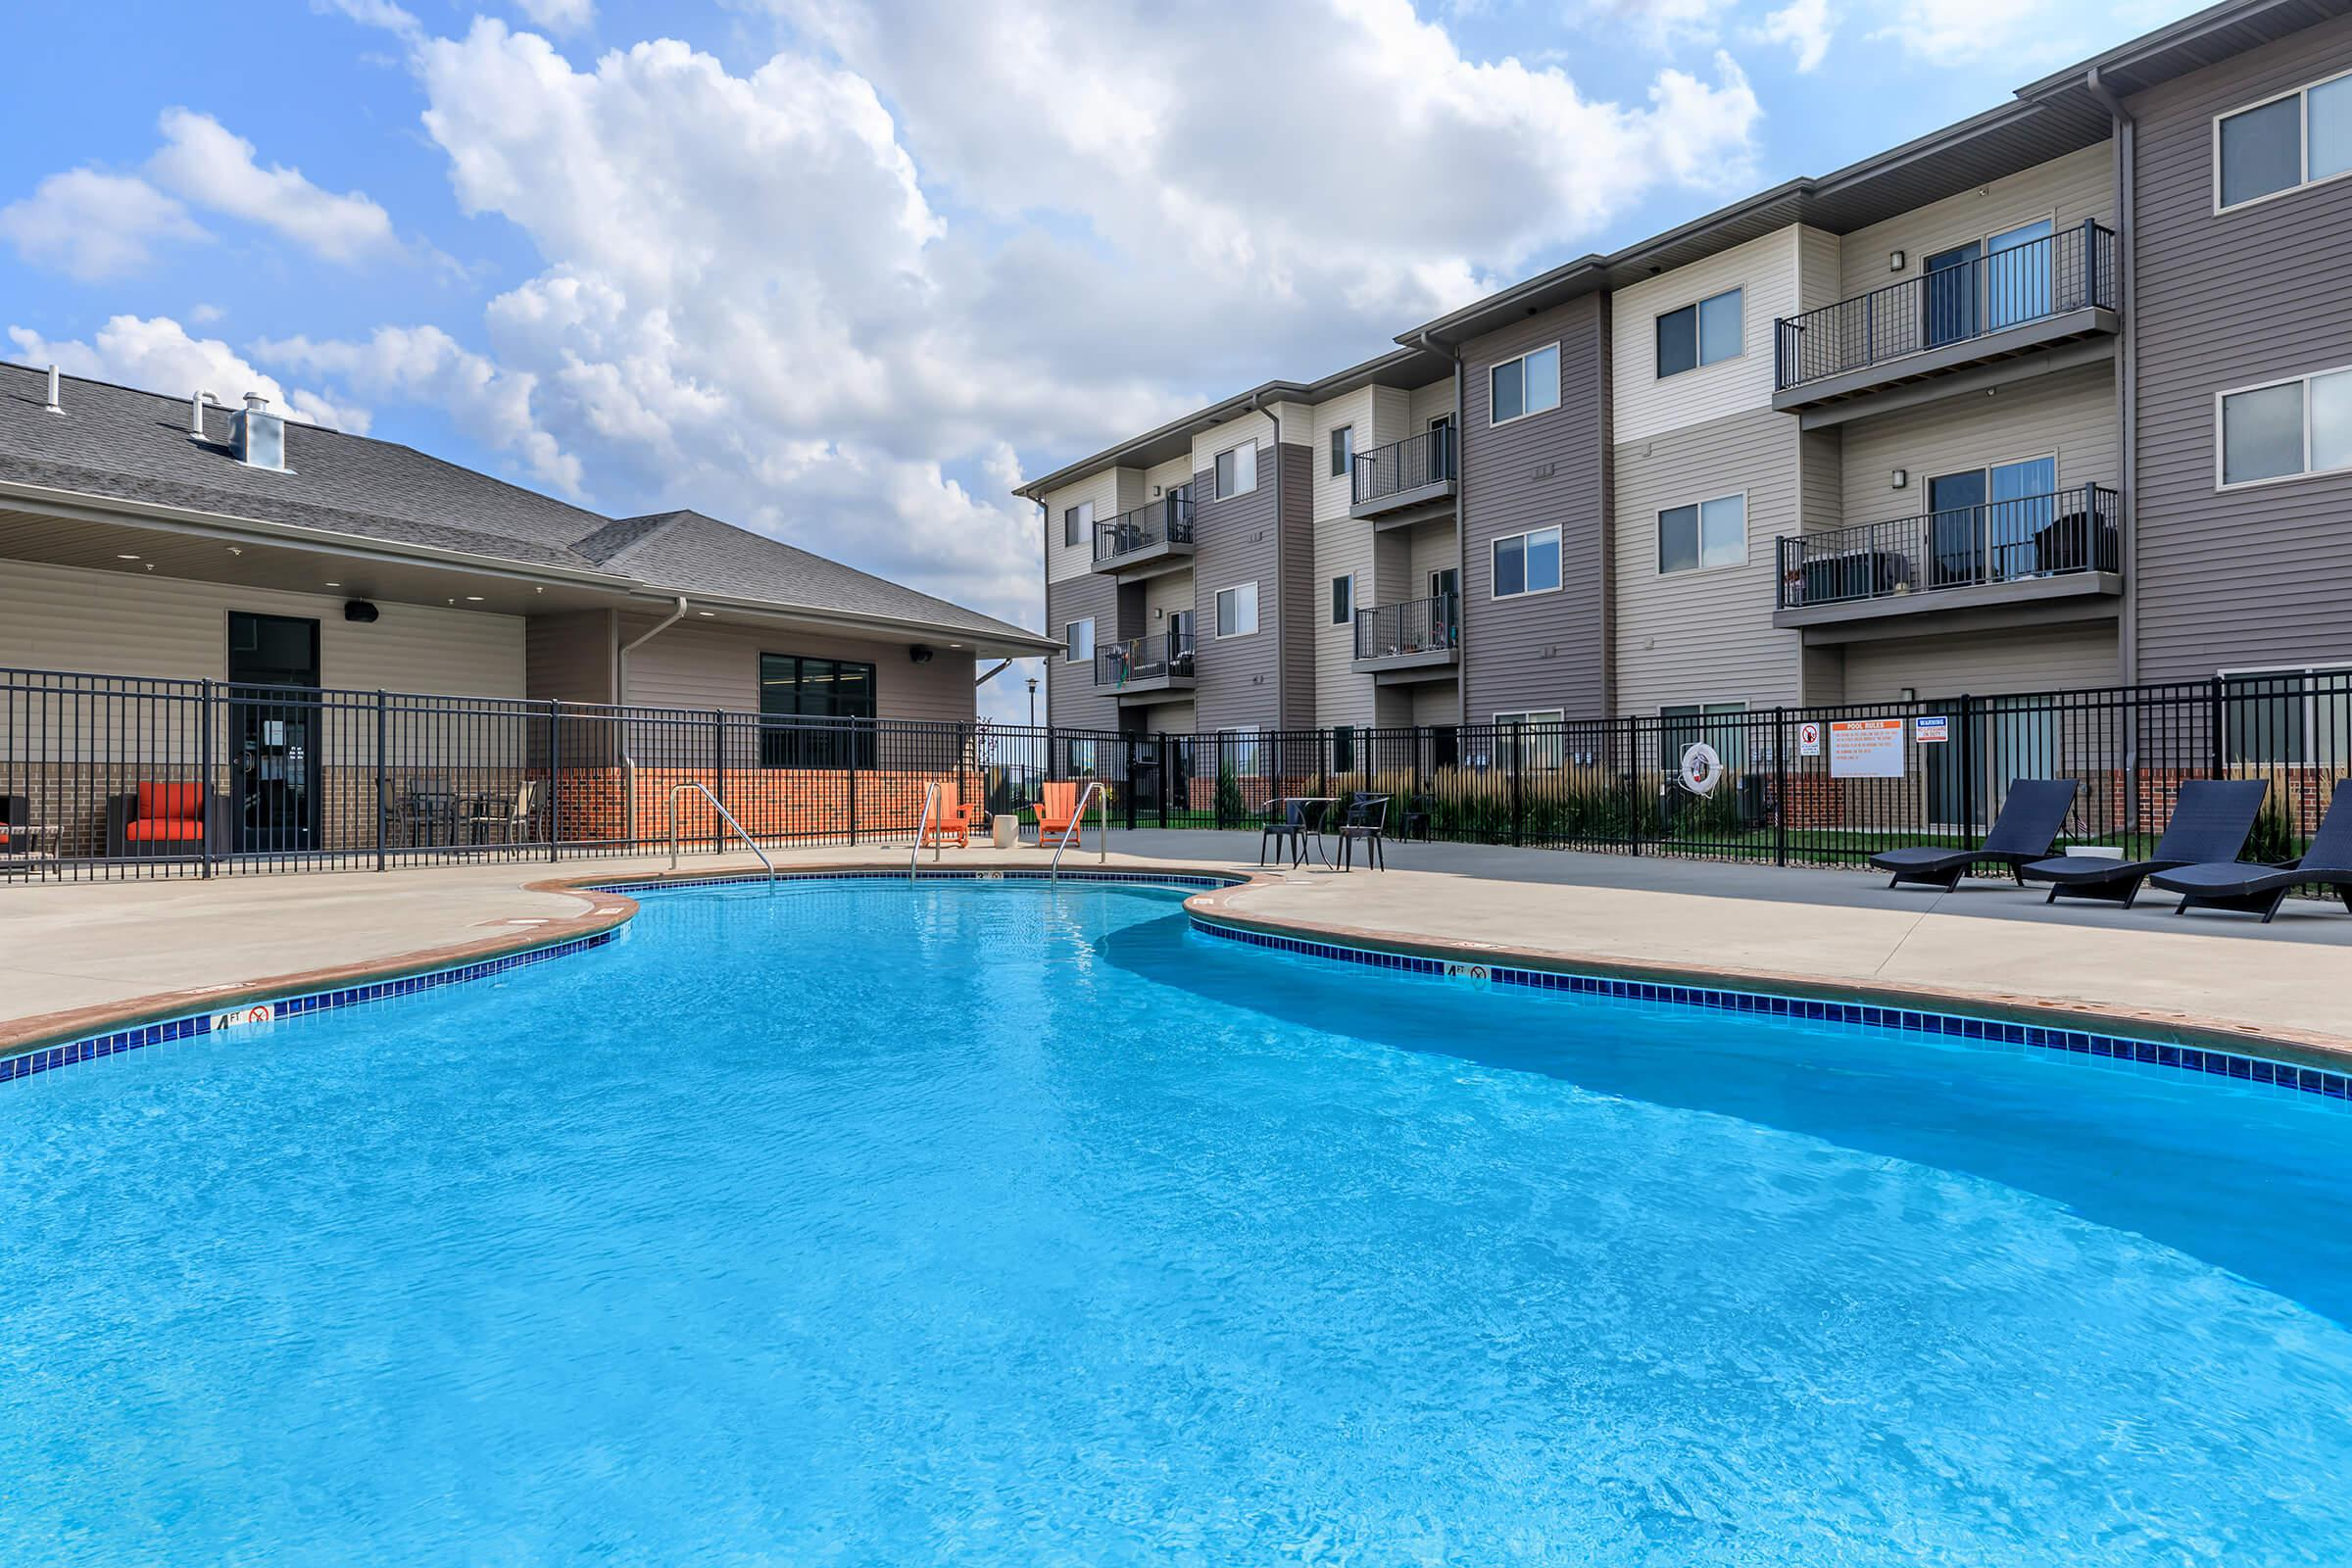 SOAK UP THE SUN AT OUR SHIMMERING SWIMMING POOL AT THE SUMMIT AT SUNNYBROOK VILLAGE